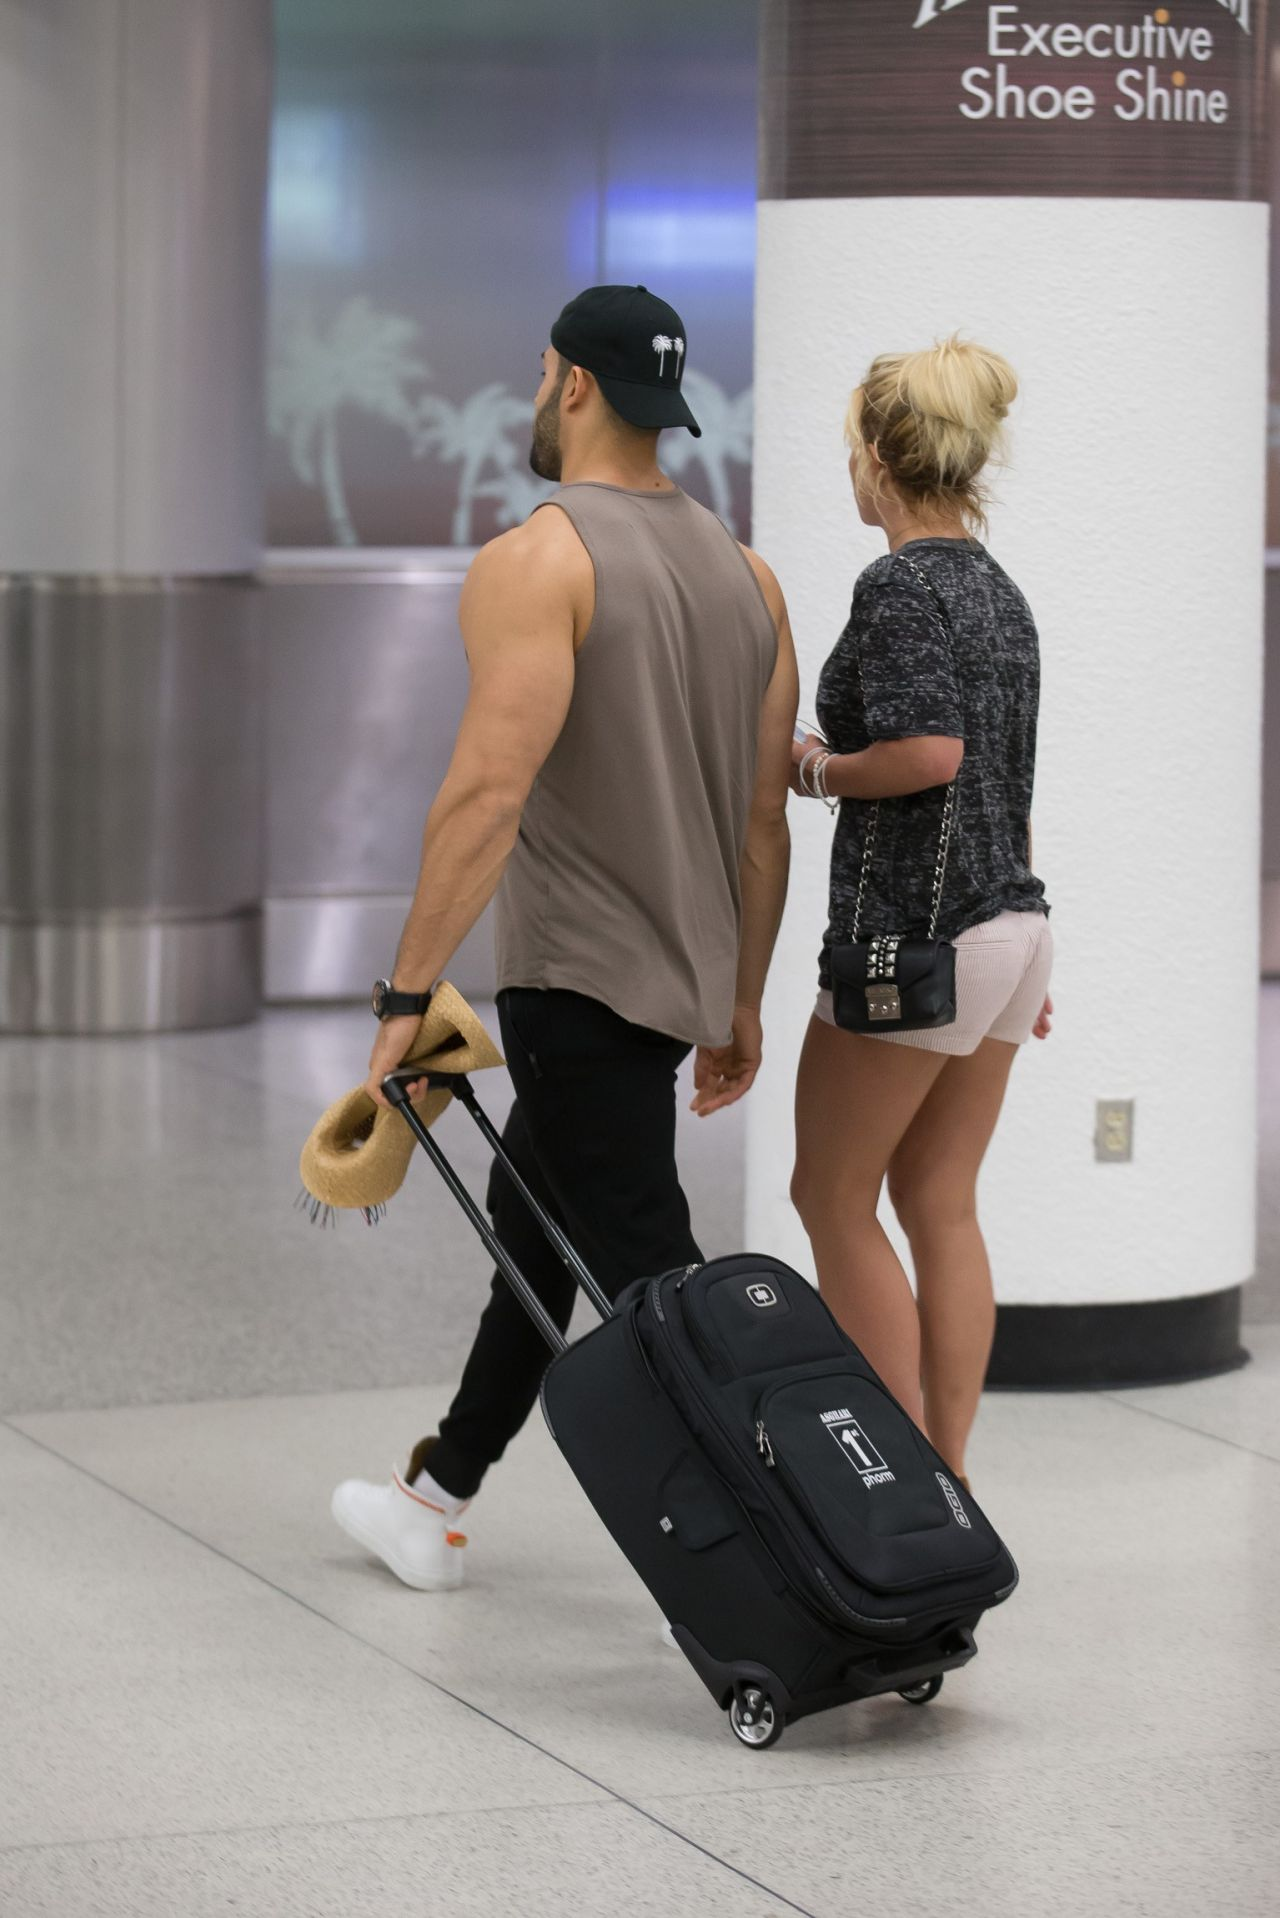 britney-spears-and-boyfriend-sam-asghari-airport-in-miami-06-10-2018-4.jpg